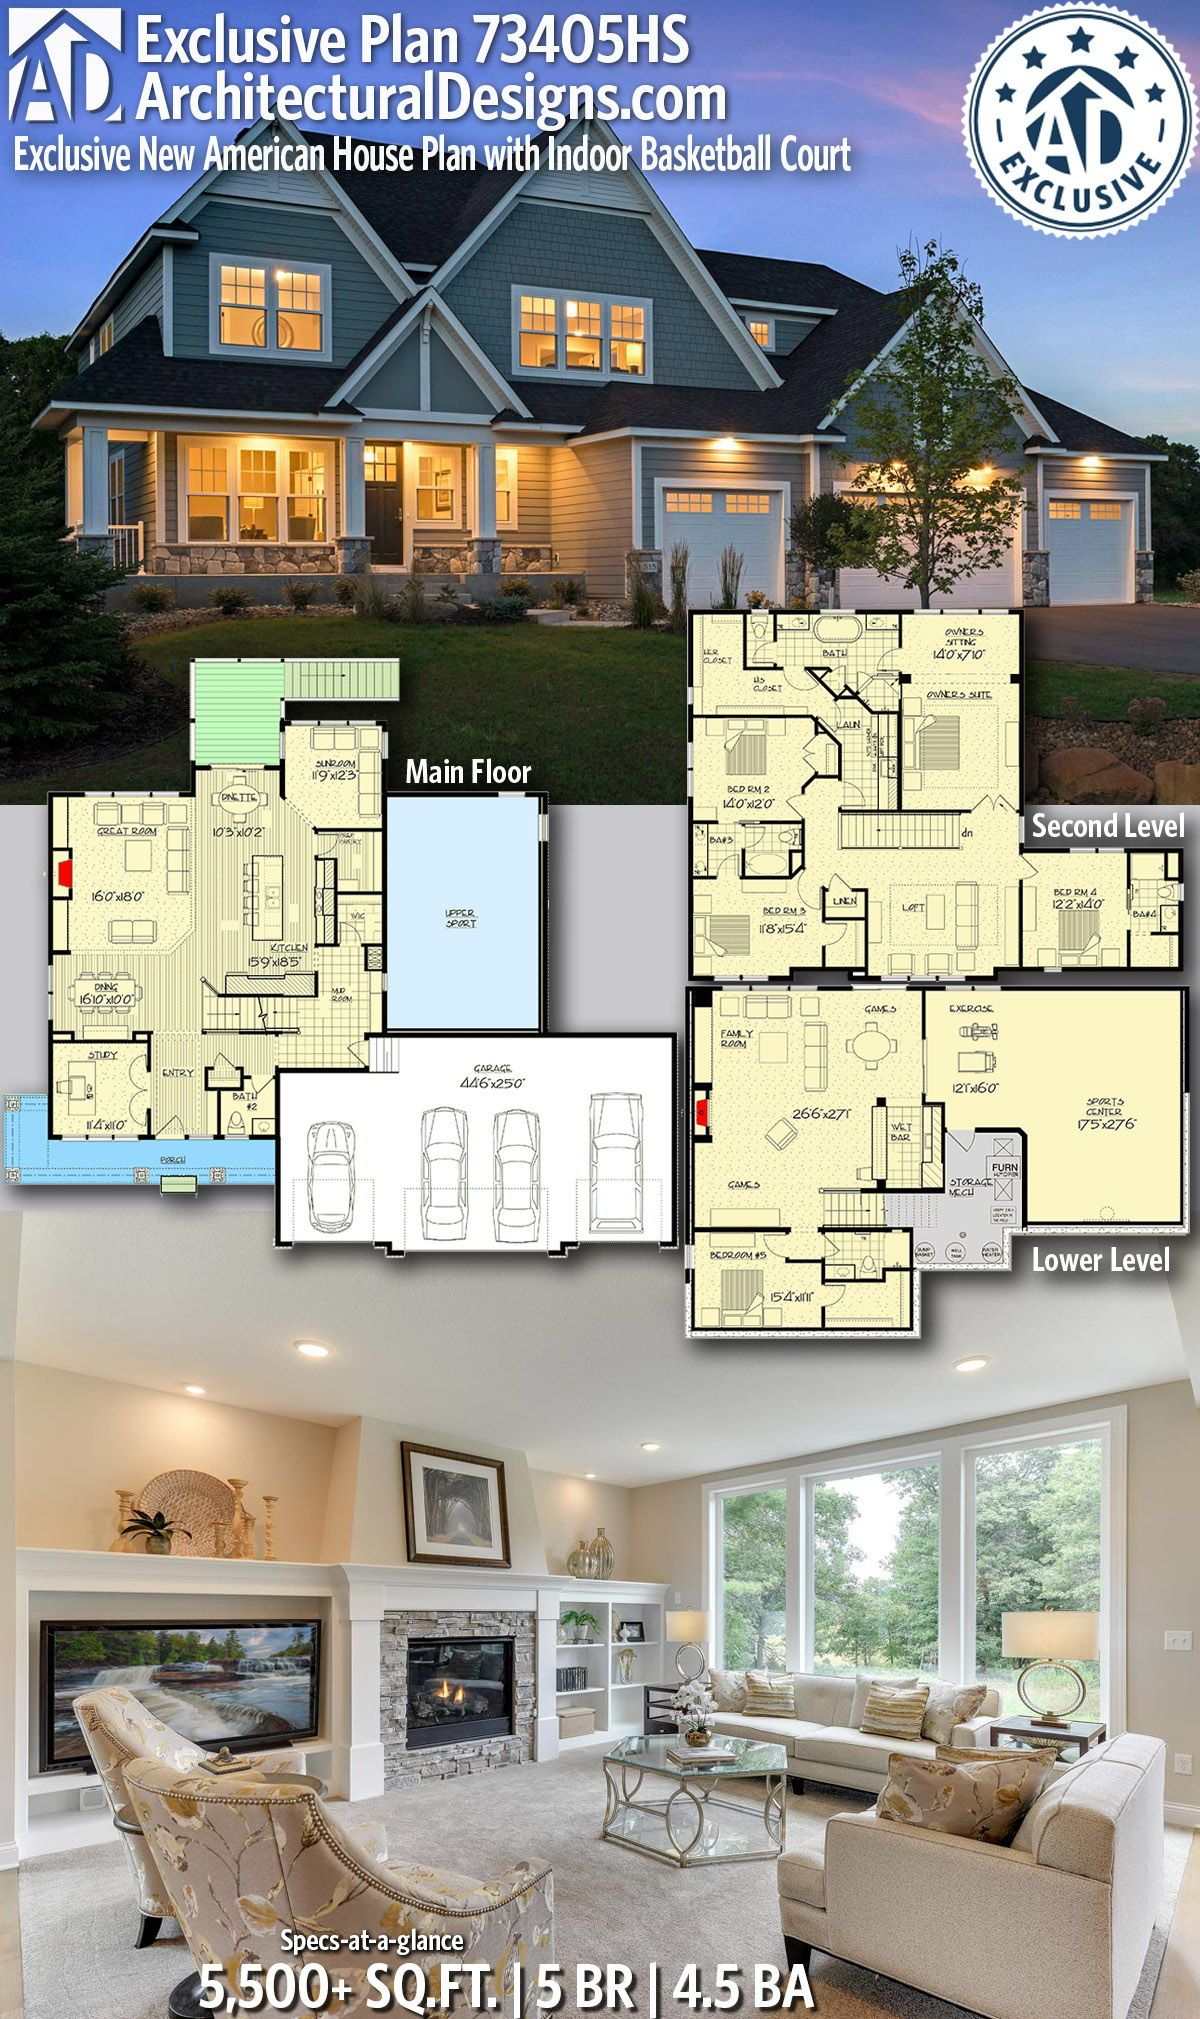 Plan 73405hs Exclusive New American House Plan With Indoor Basketball Court House Blueprints House Plans Mountain House Plans